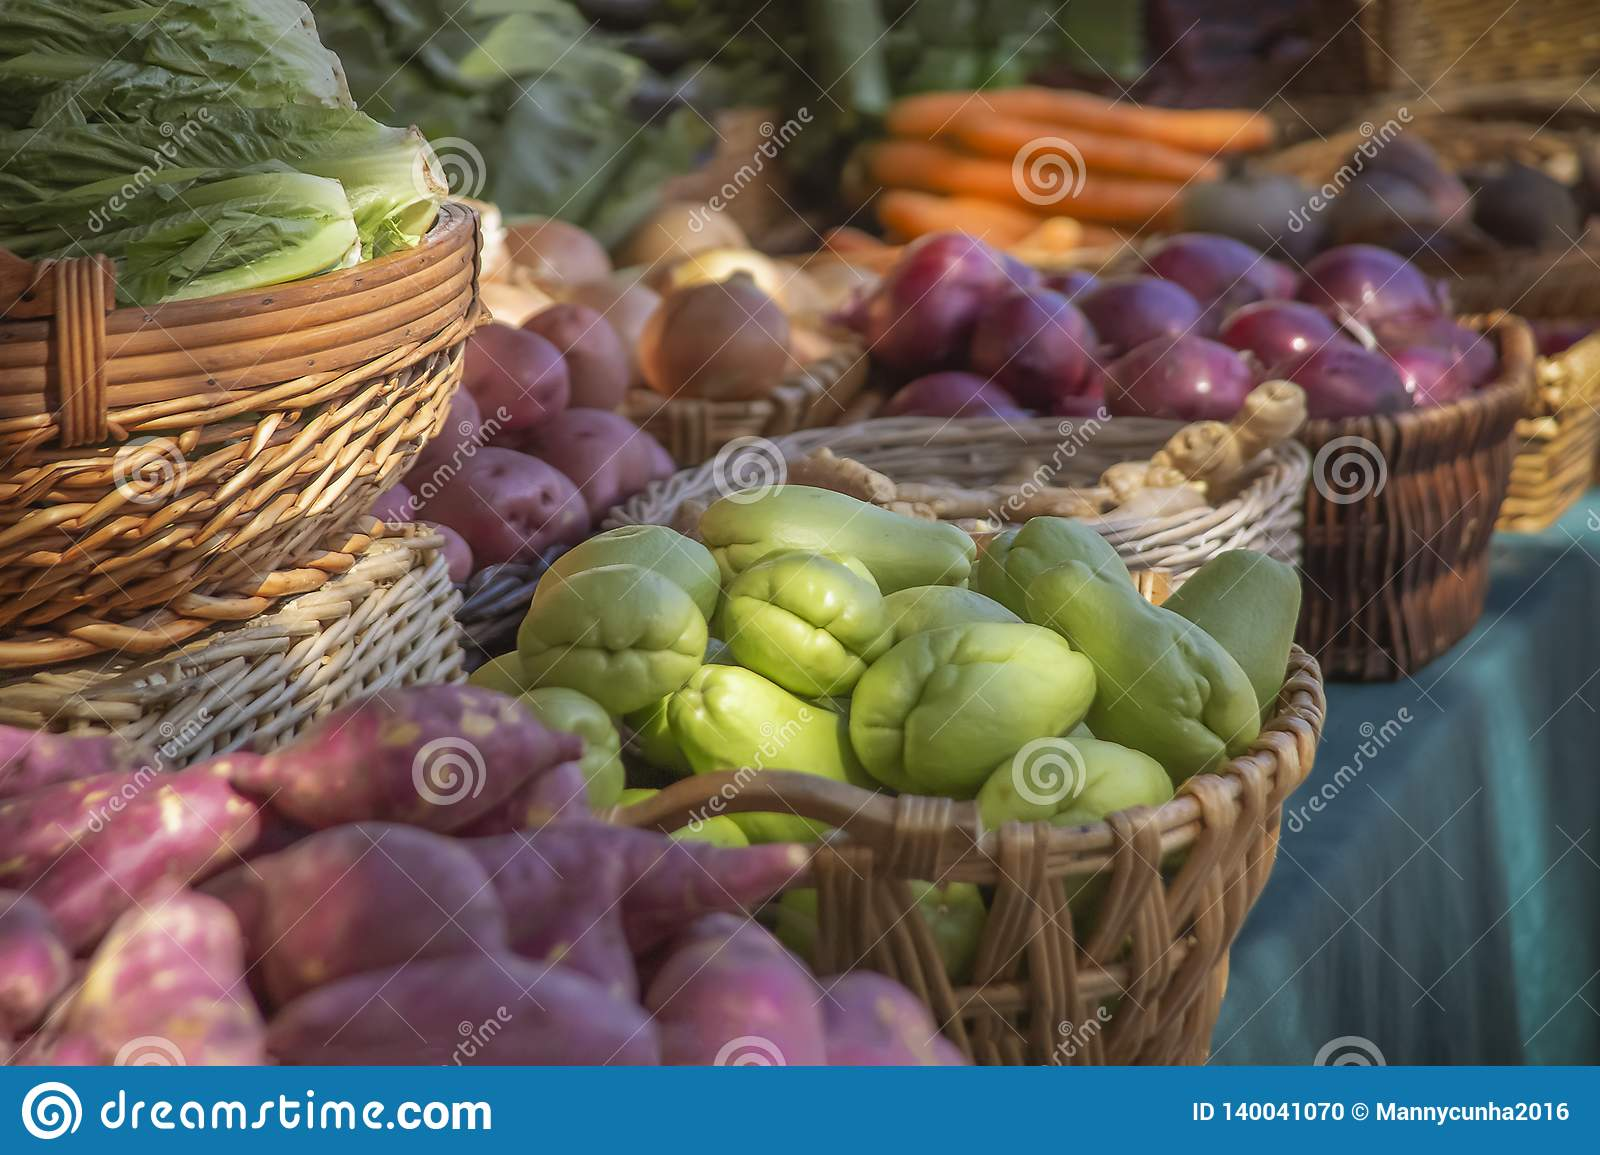 Fresh display of produce at the Farmers Market